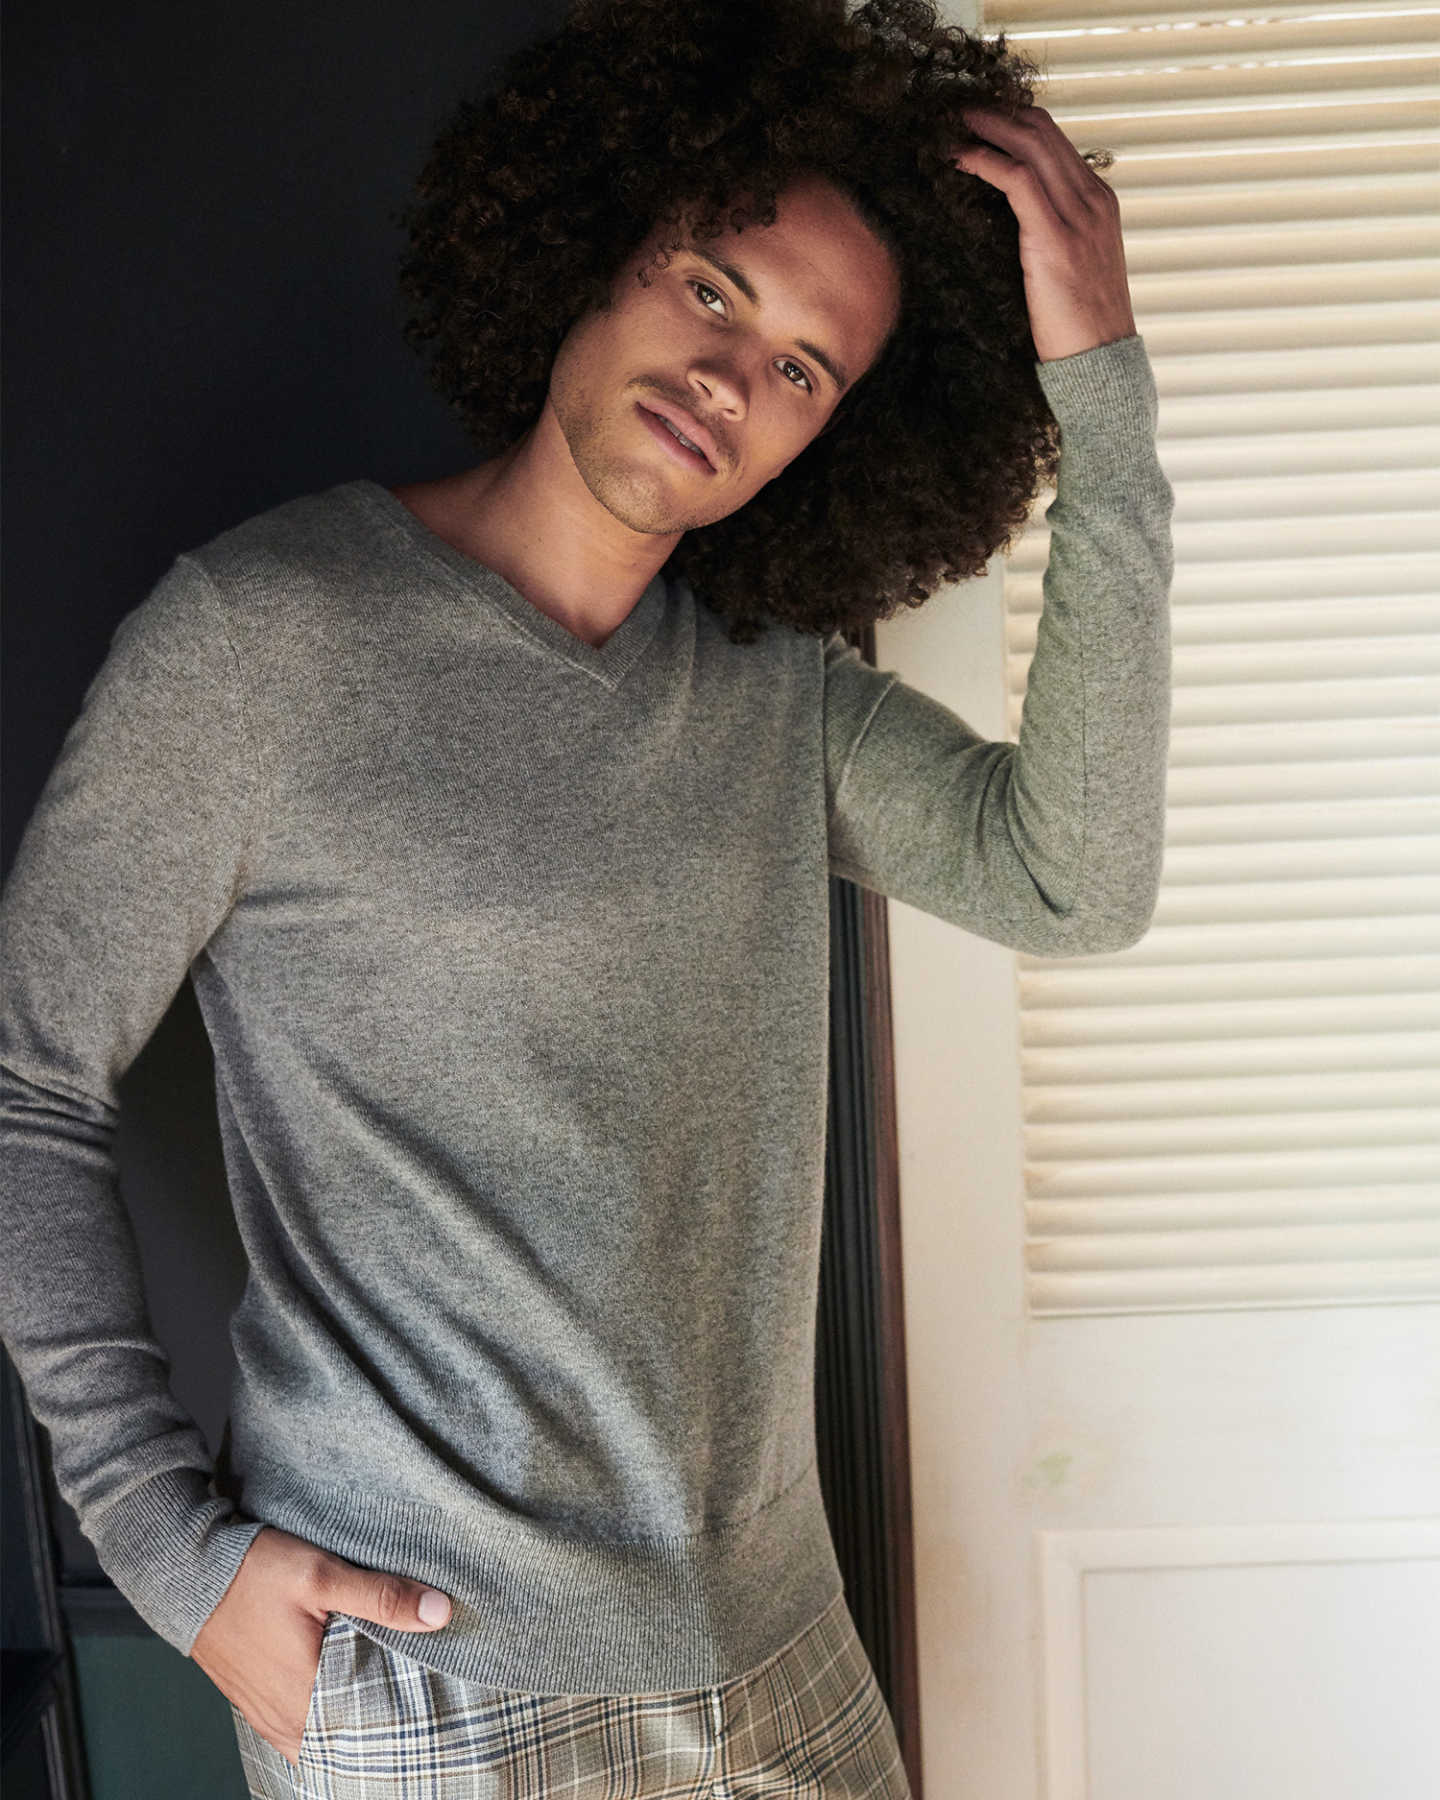 Man wearing grey cashmere v-neck sweater